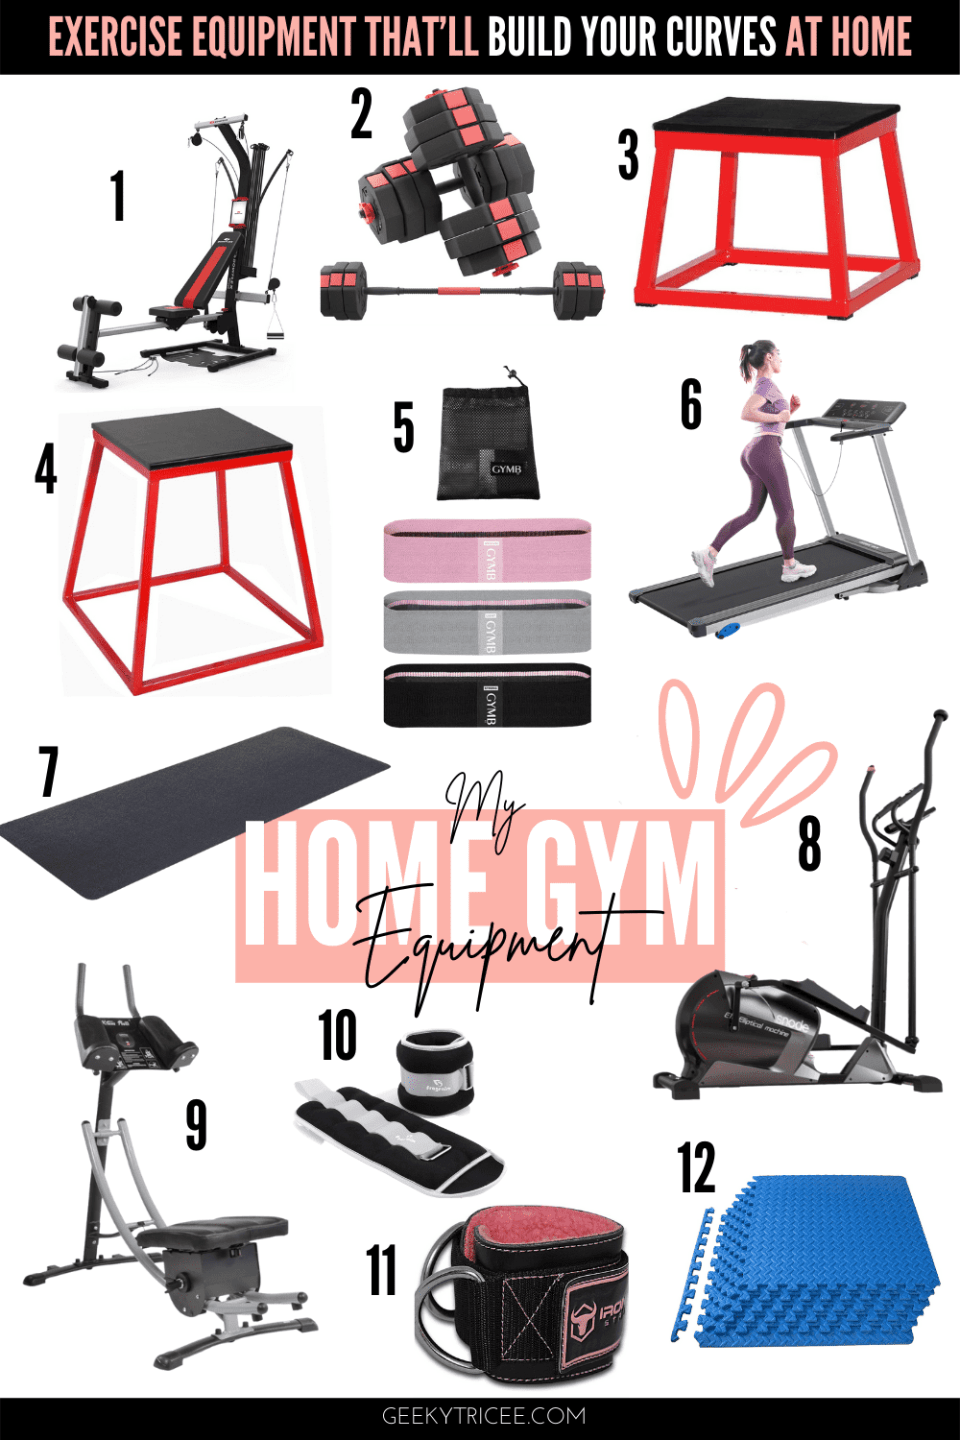 Home gym exercise equipment ideas for small spaces